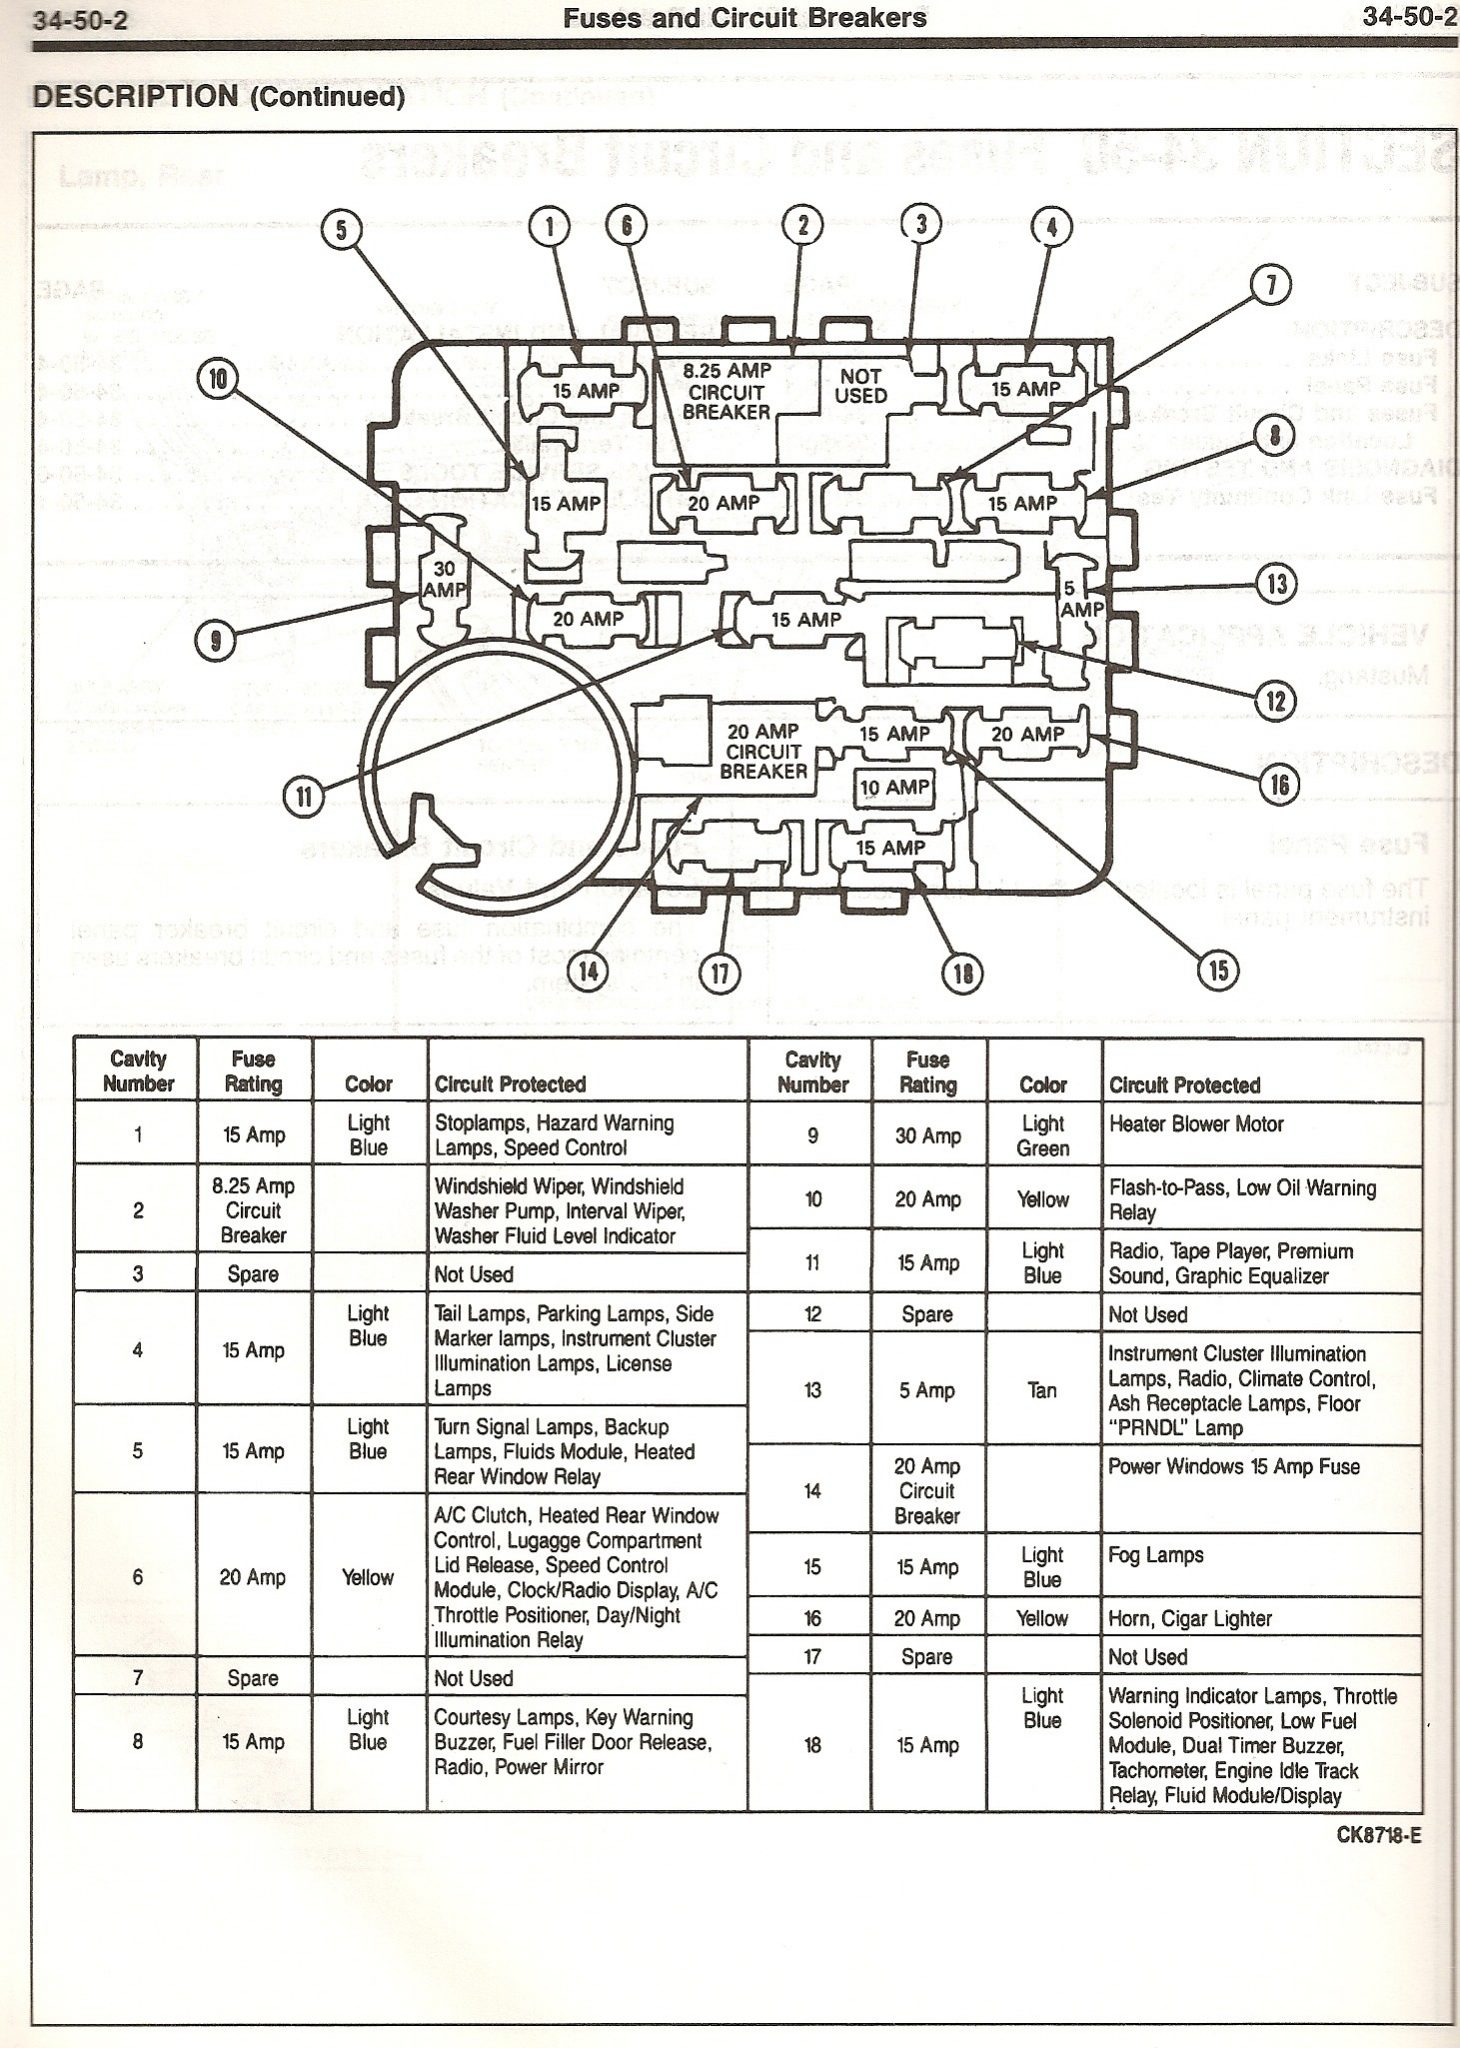 hight resolution of 92 mustang fuse box wiring diagrams electrical 1970 mustang fuse box diagram 87 mustang fuse box